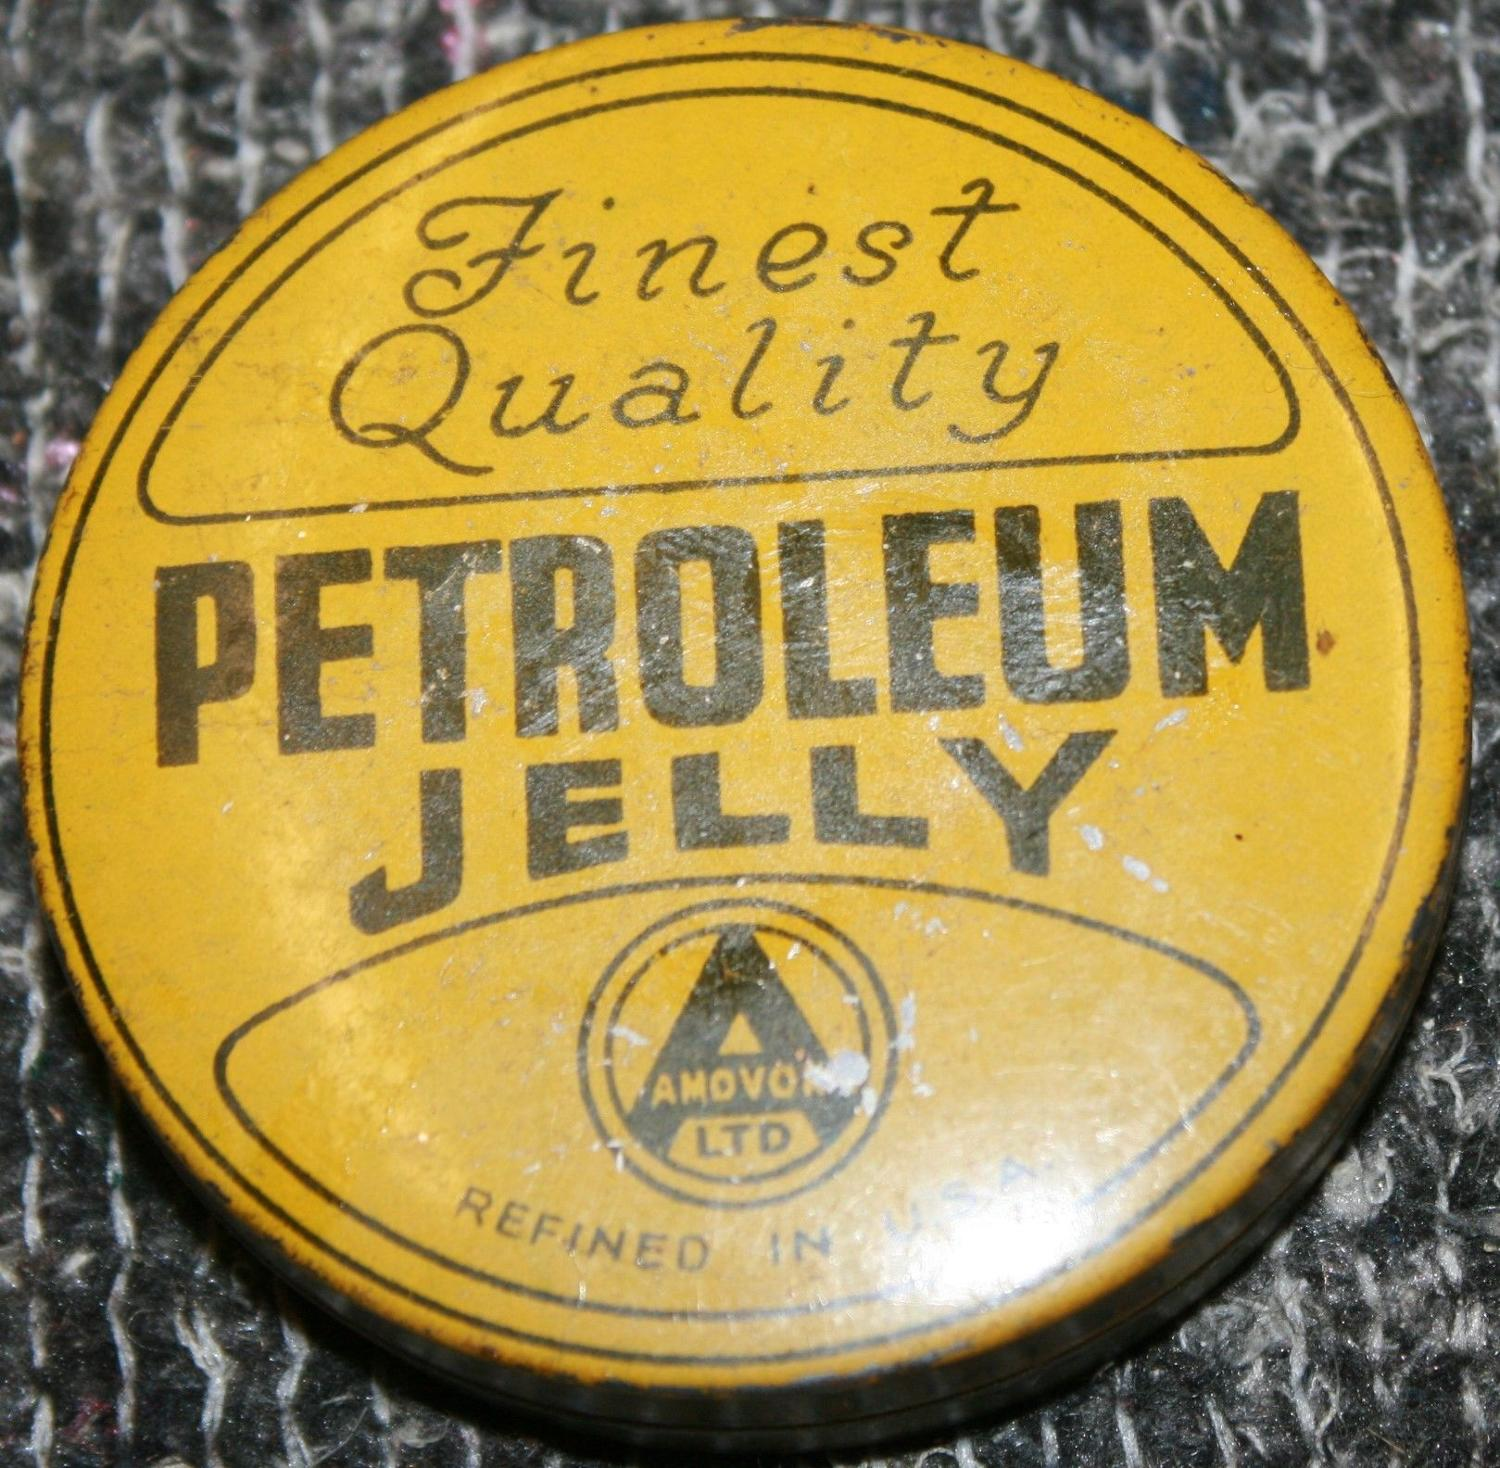 A TIN OF WWII PERIOD PETROLEUM JELLY